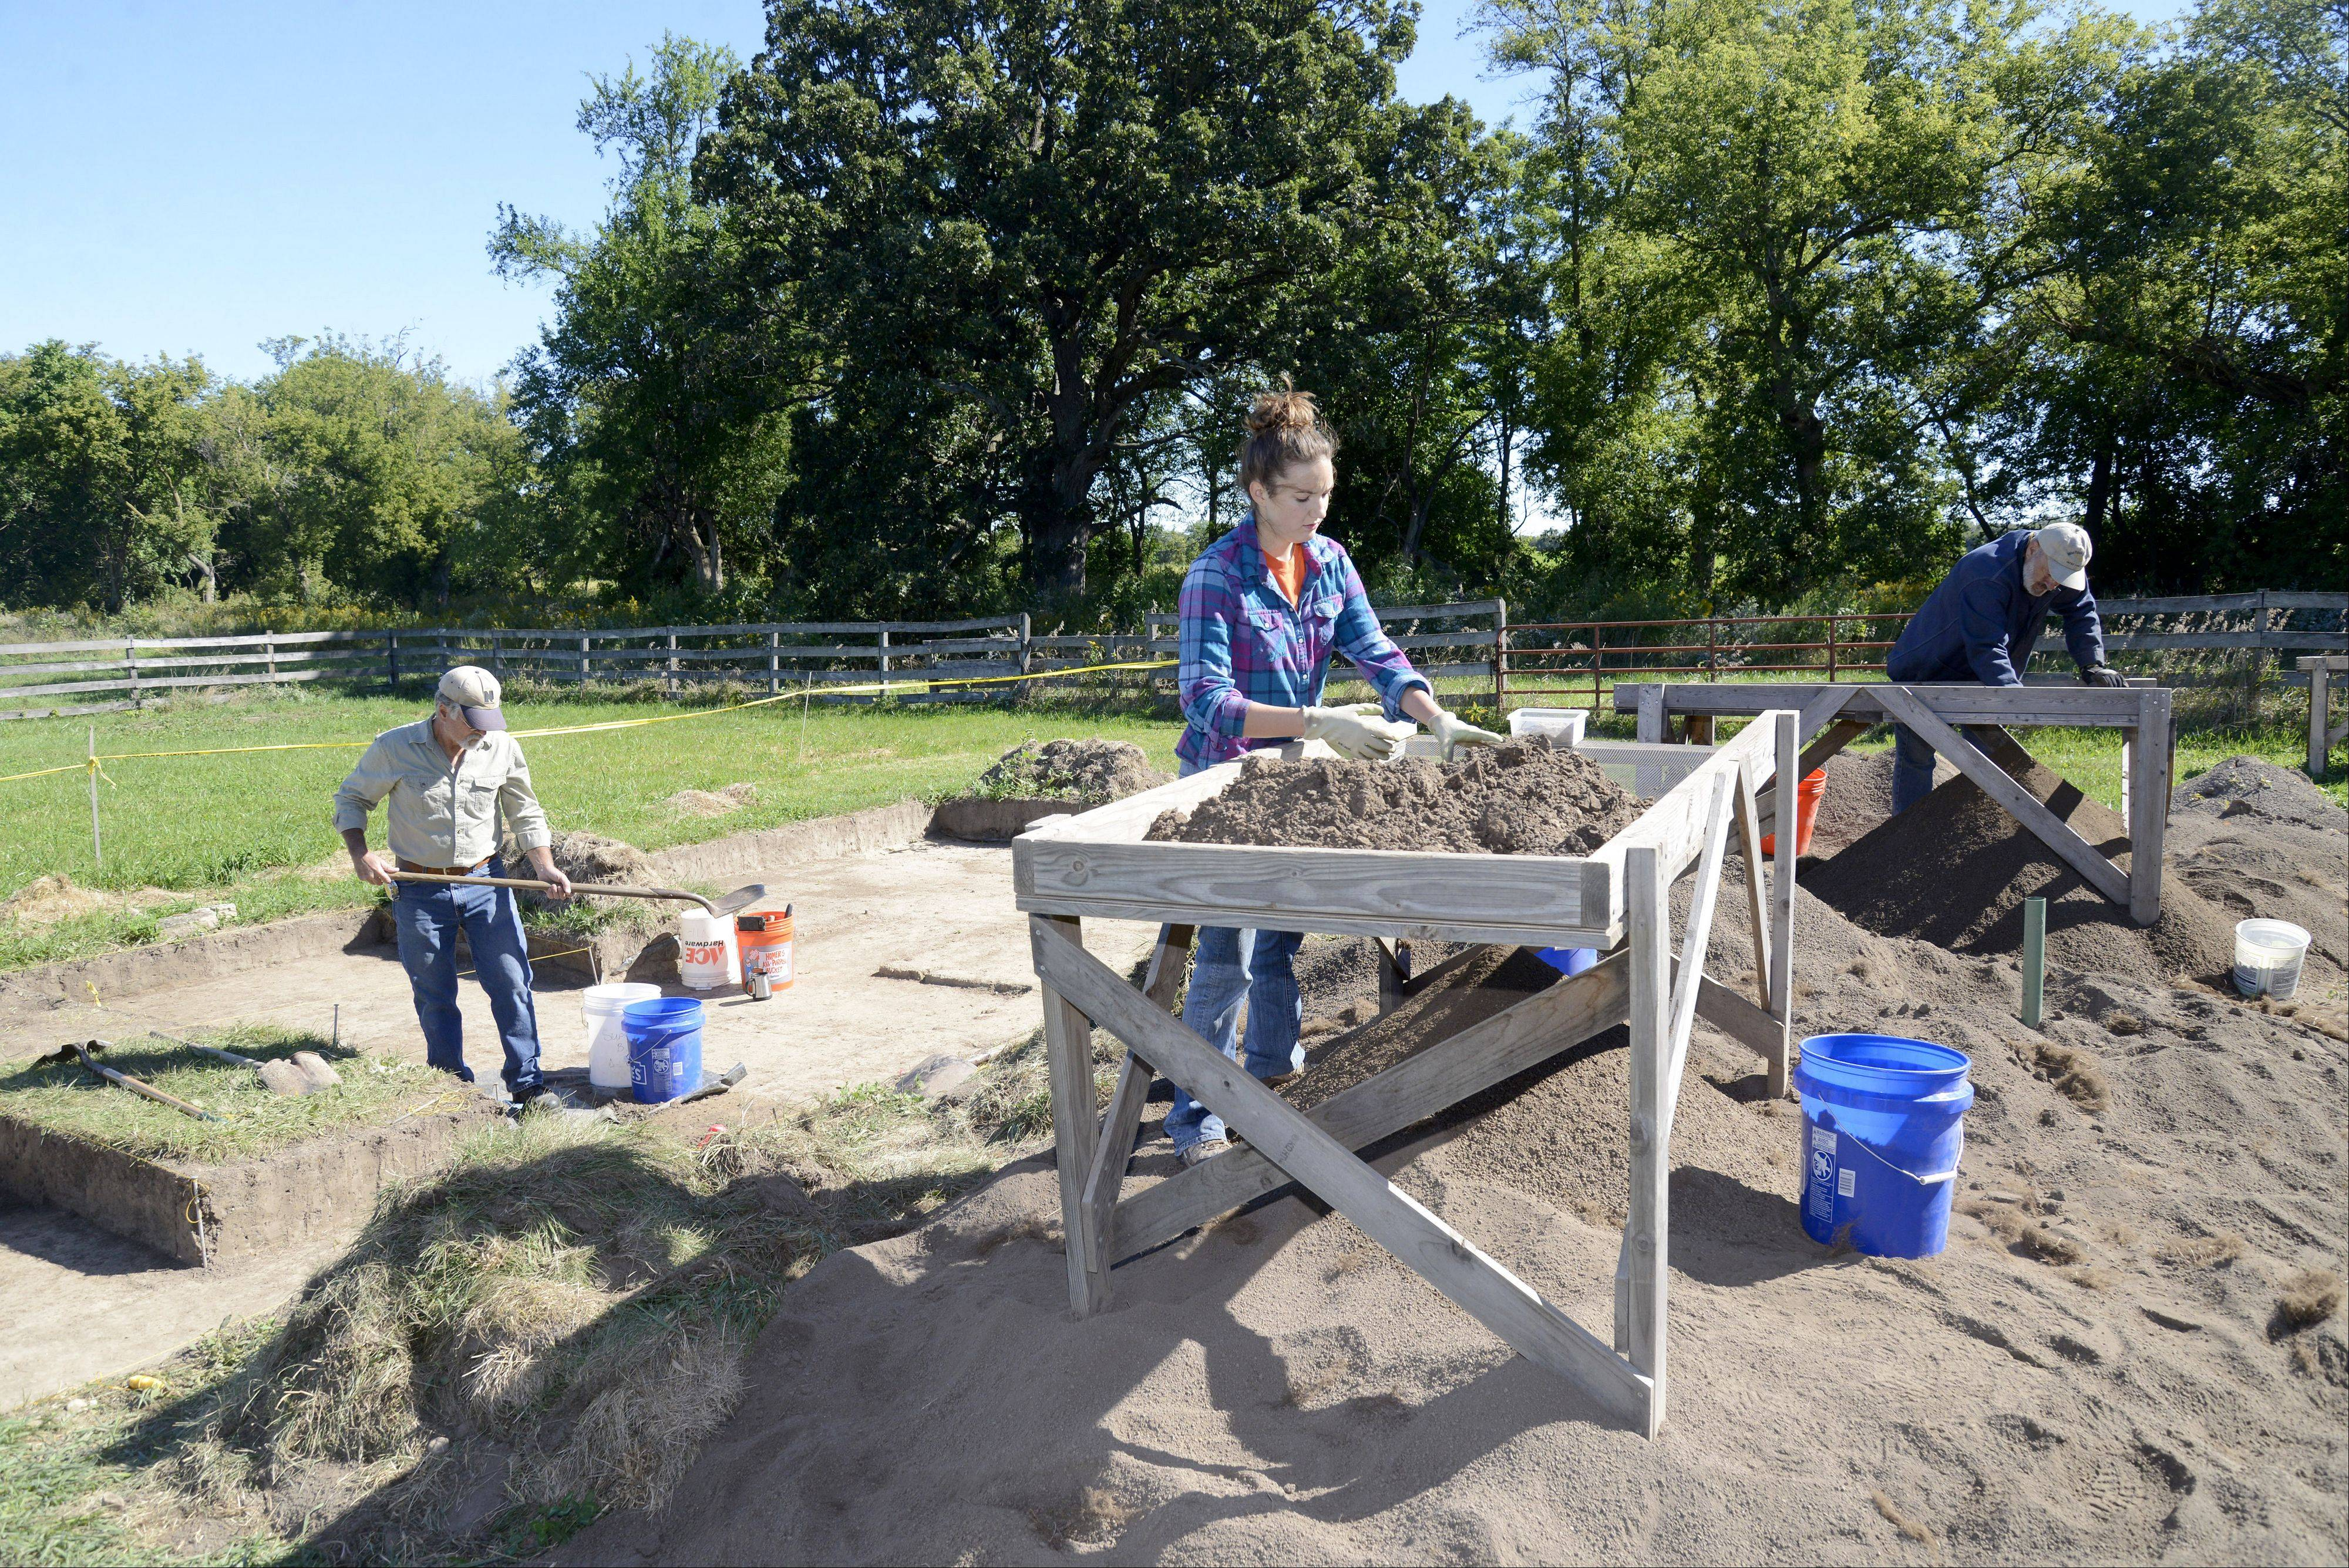 Archaeologist Jim Yingst shovels while volunteers Caitlin Harrison of Roselle and Dan Nippert of Geneva work on table screens sifting through 1 x 1 meter units of soil on a dig site of where the original log home structure once stood at Garfield Farm in Campton Hills. Sam and Margret Culbertson and their family originally claimed and settled on the land that is now known as the Garfield Farm Museum in July 1835. Culbertson sold the farm six years later to Timothy Garfield. Descendants representing four of the eight Culbertson children will be coming to town on Saturday to visit the old family homestead and view the excavation of area of where the family's original log home once stood. The site has been dug in various areas over eight seasons.